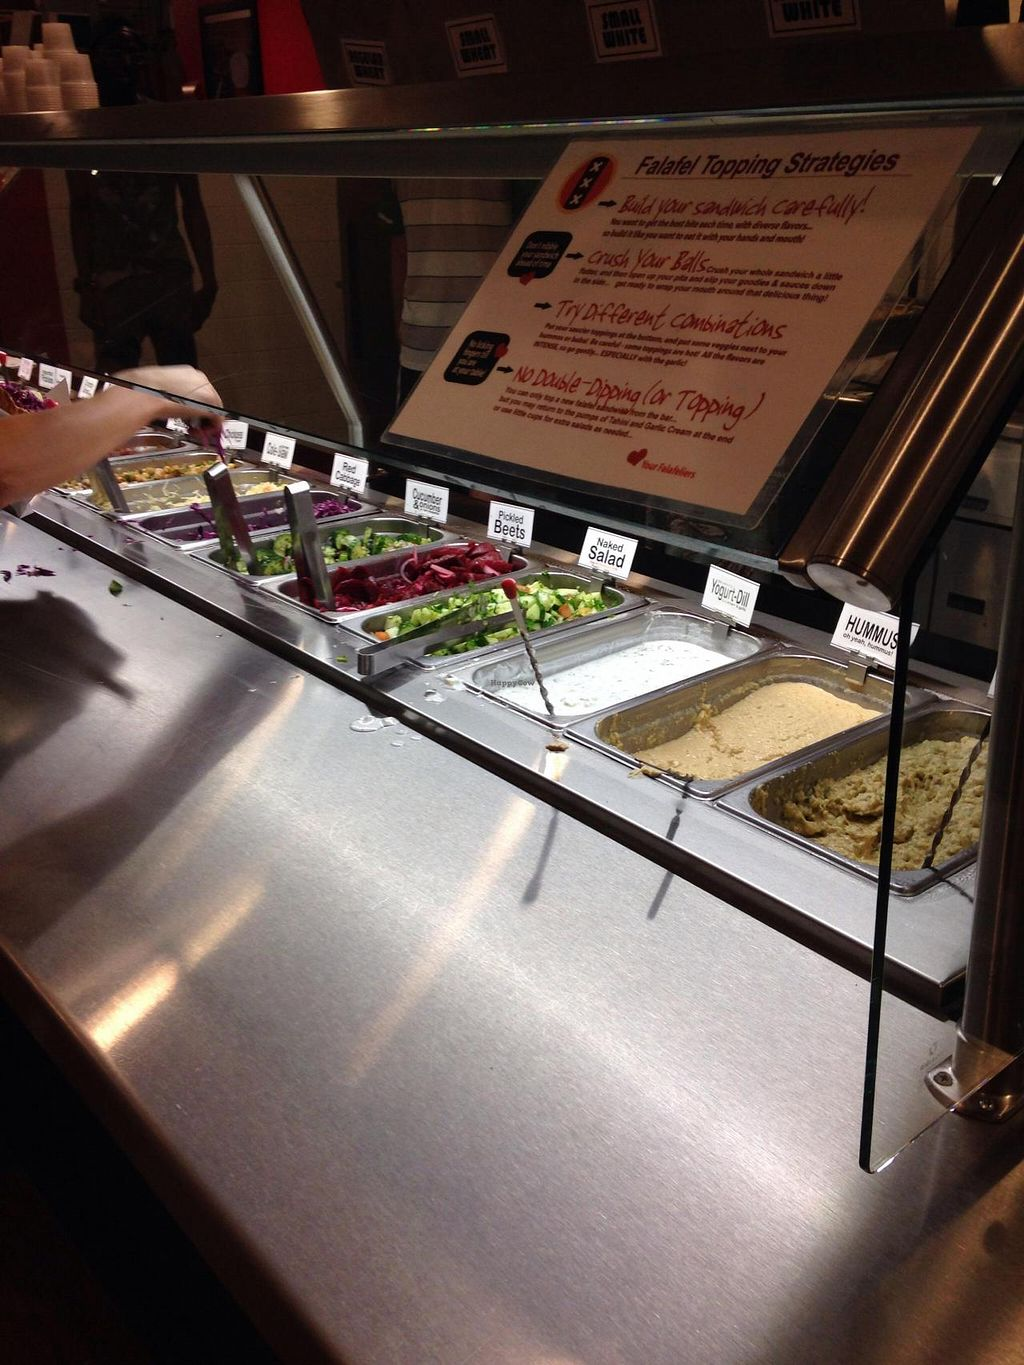 """Photo of Amsterdam Falafelshop  by <a href=""""/members/profile/cookiem"""">cookiem</a> <br/>How to fix your falafel <br/> July 8, 2014  - <a href='/contact/abuse/image/48535/73557'>Report</a>"""